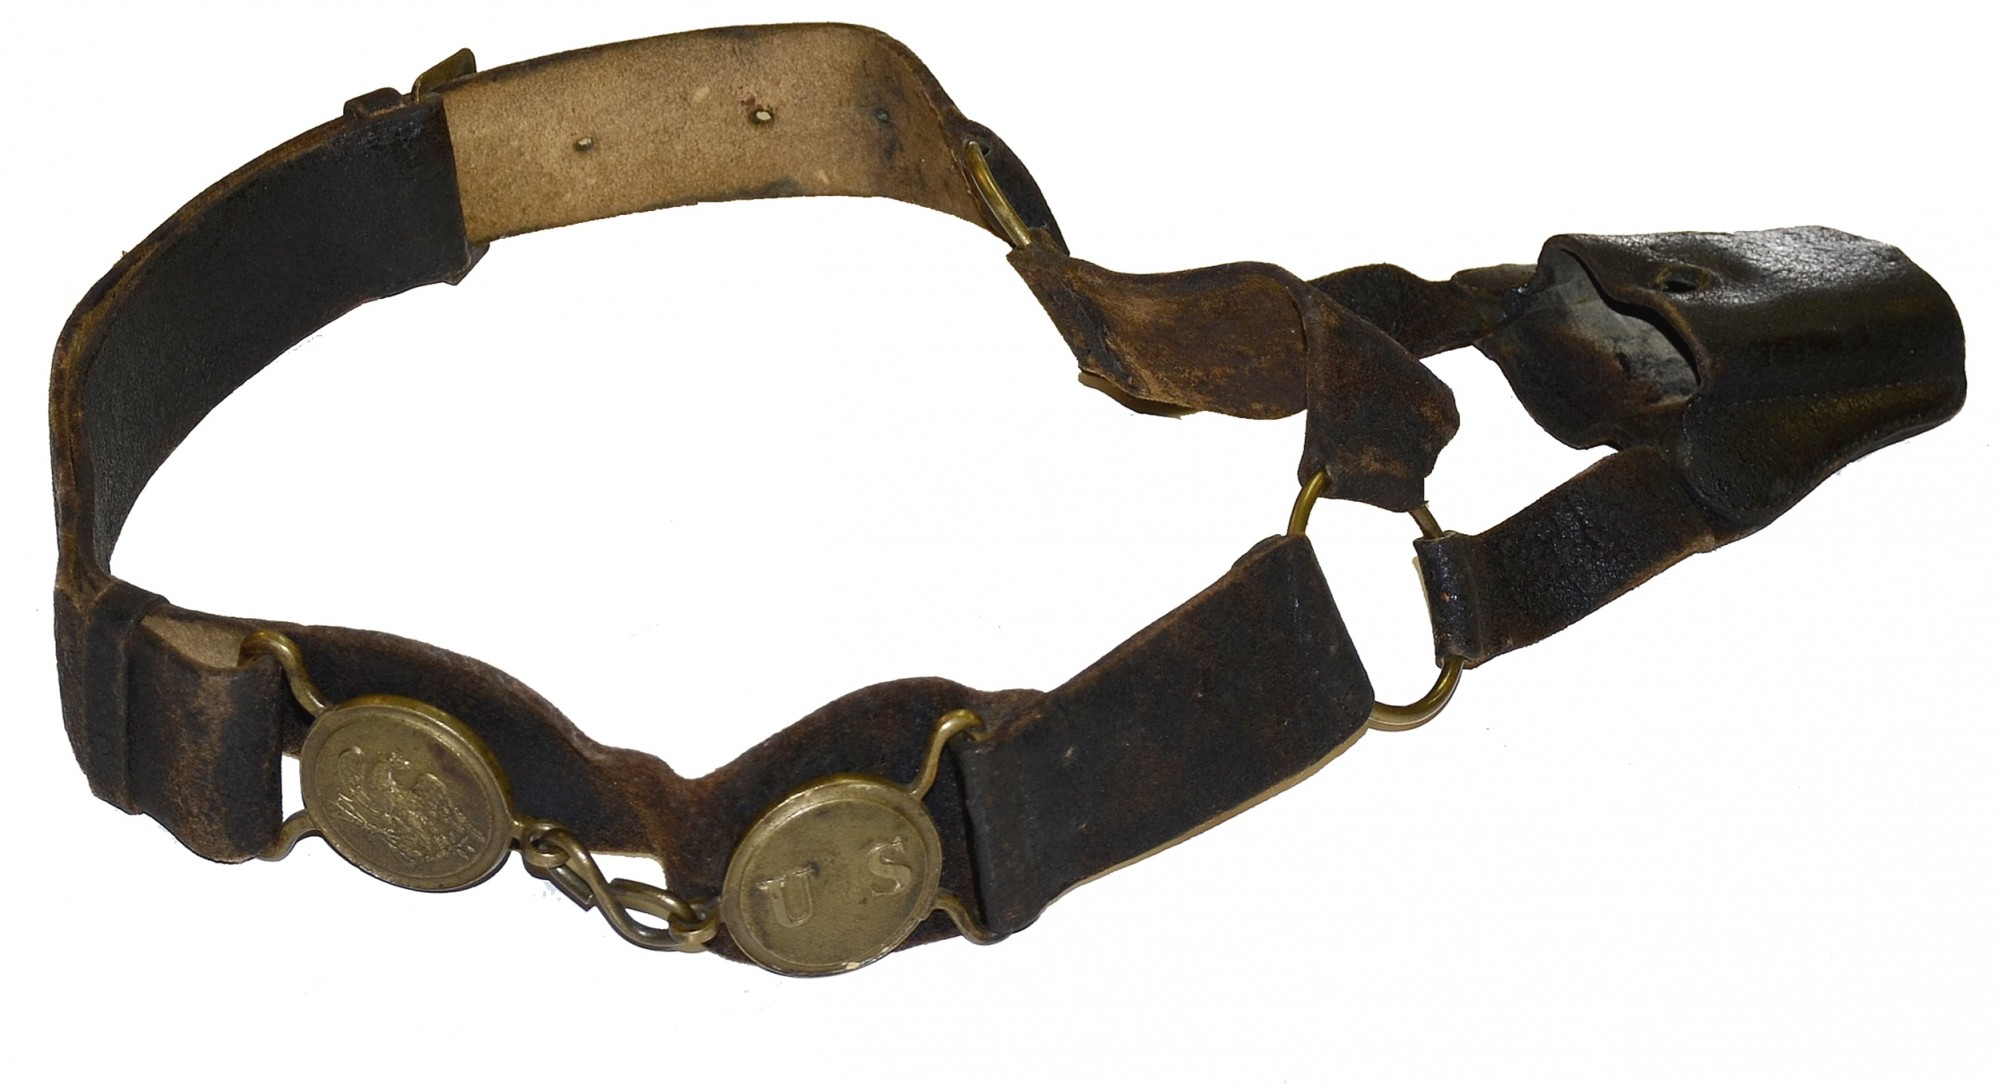 1830's INFANTRY NCO WAIST BELT AND PLATE